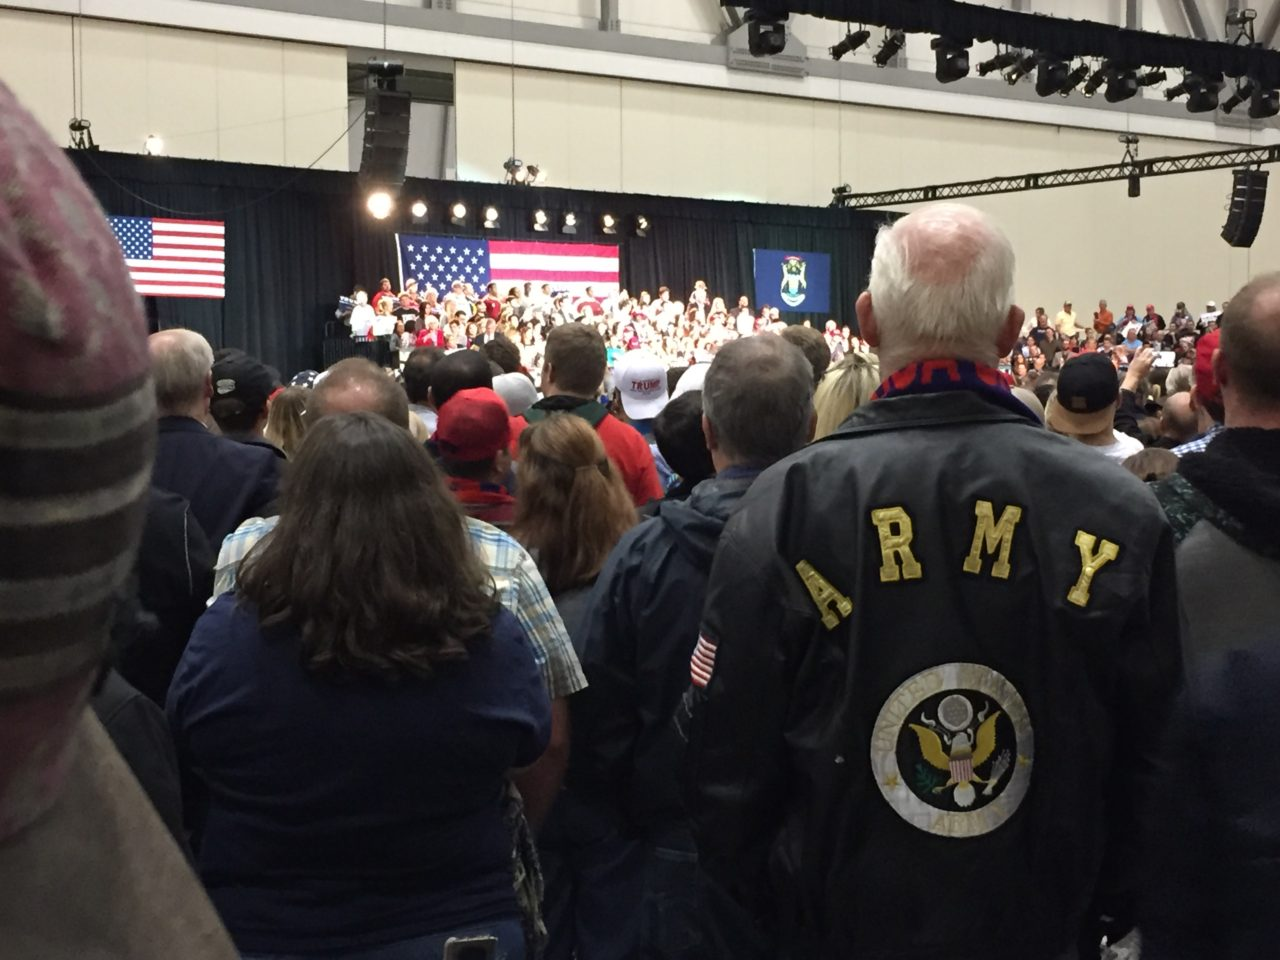 Donald Trump Final 2016 Rally Grand Rapids Michigan (Joel Pollak / Breitbart News)